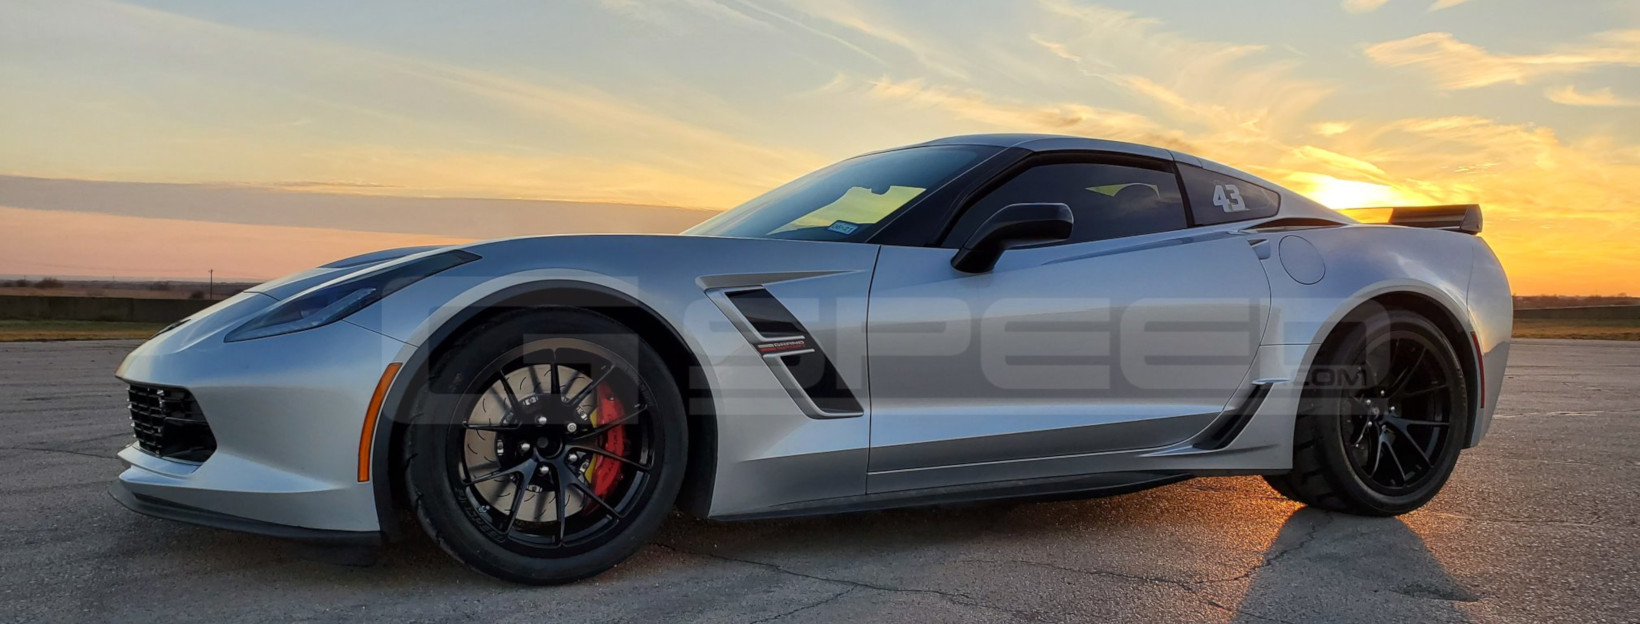 Corvette C7 Monoblock Forged Wheels Finspeed Evo-1640-624